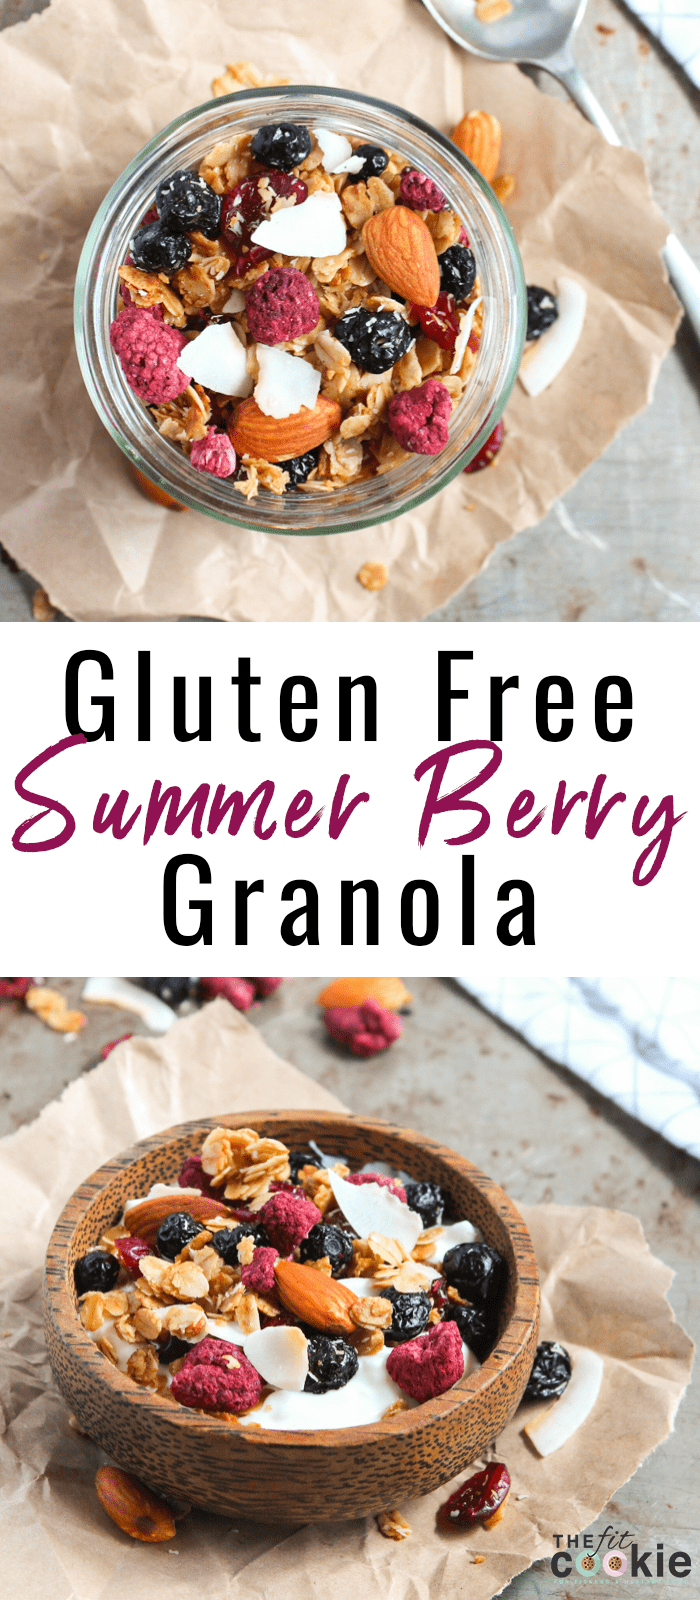 This Gluten Free Summer Berry Granola is sweet, crunchy, and tastes a little like cookies to brighten your morning! It can also be made nut free. - @TheFitCookie #glutenfree #dairyfree #granola